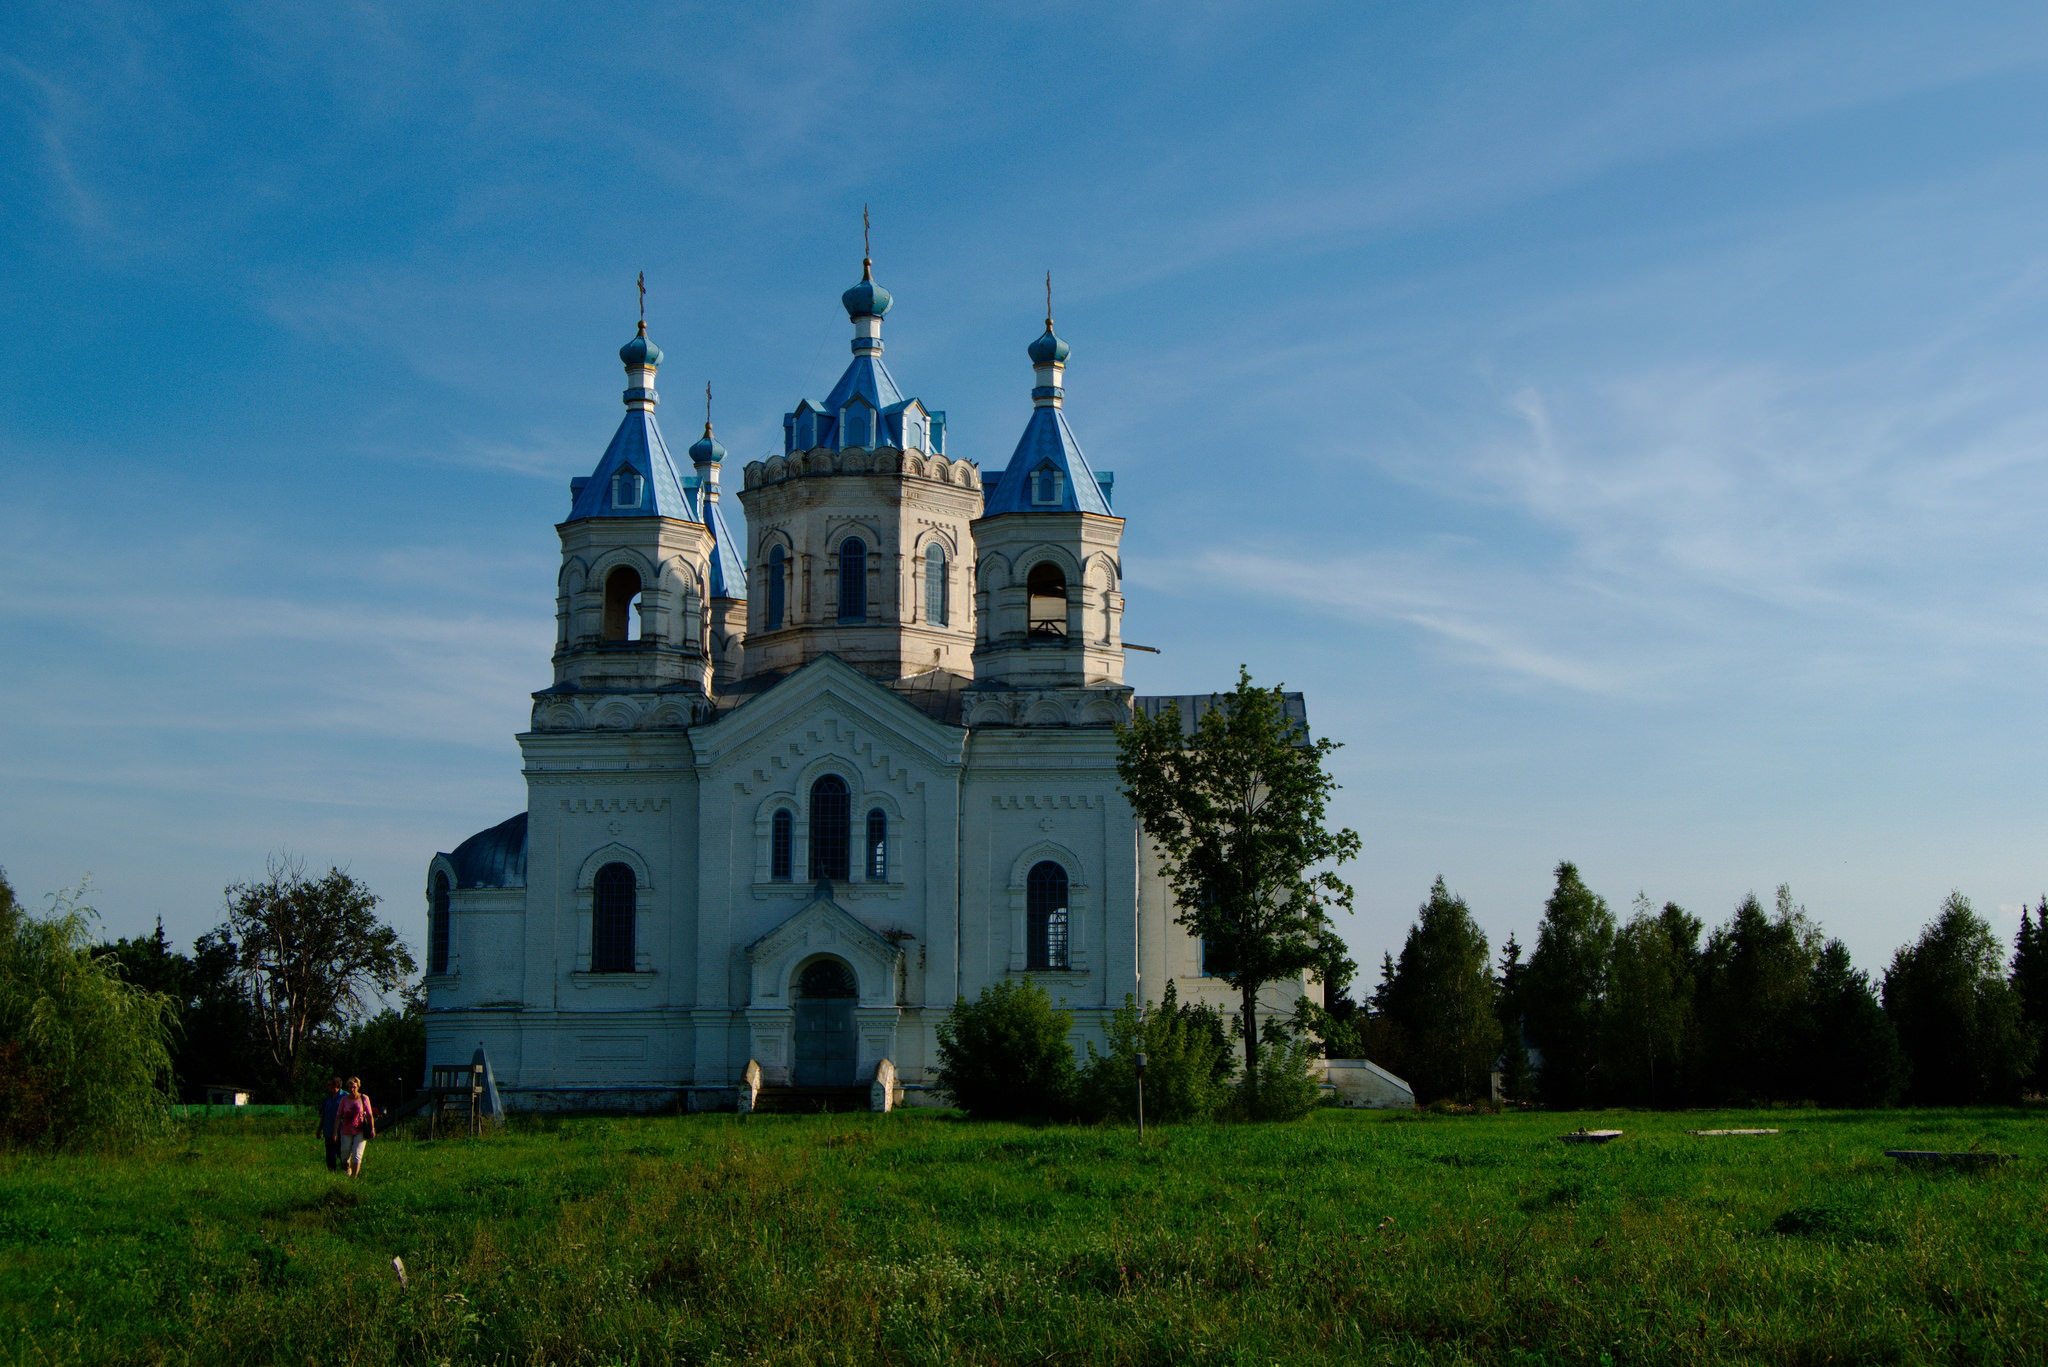 Summer landscape. The old church. Church of the Epiphany. by Andrey Gordeeff